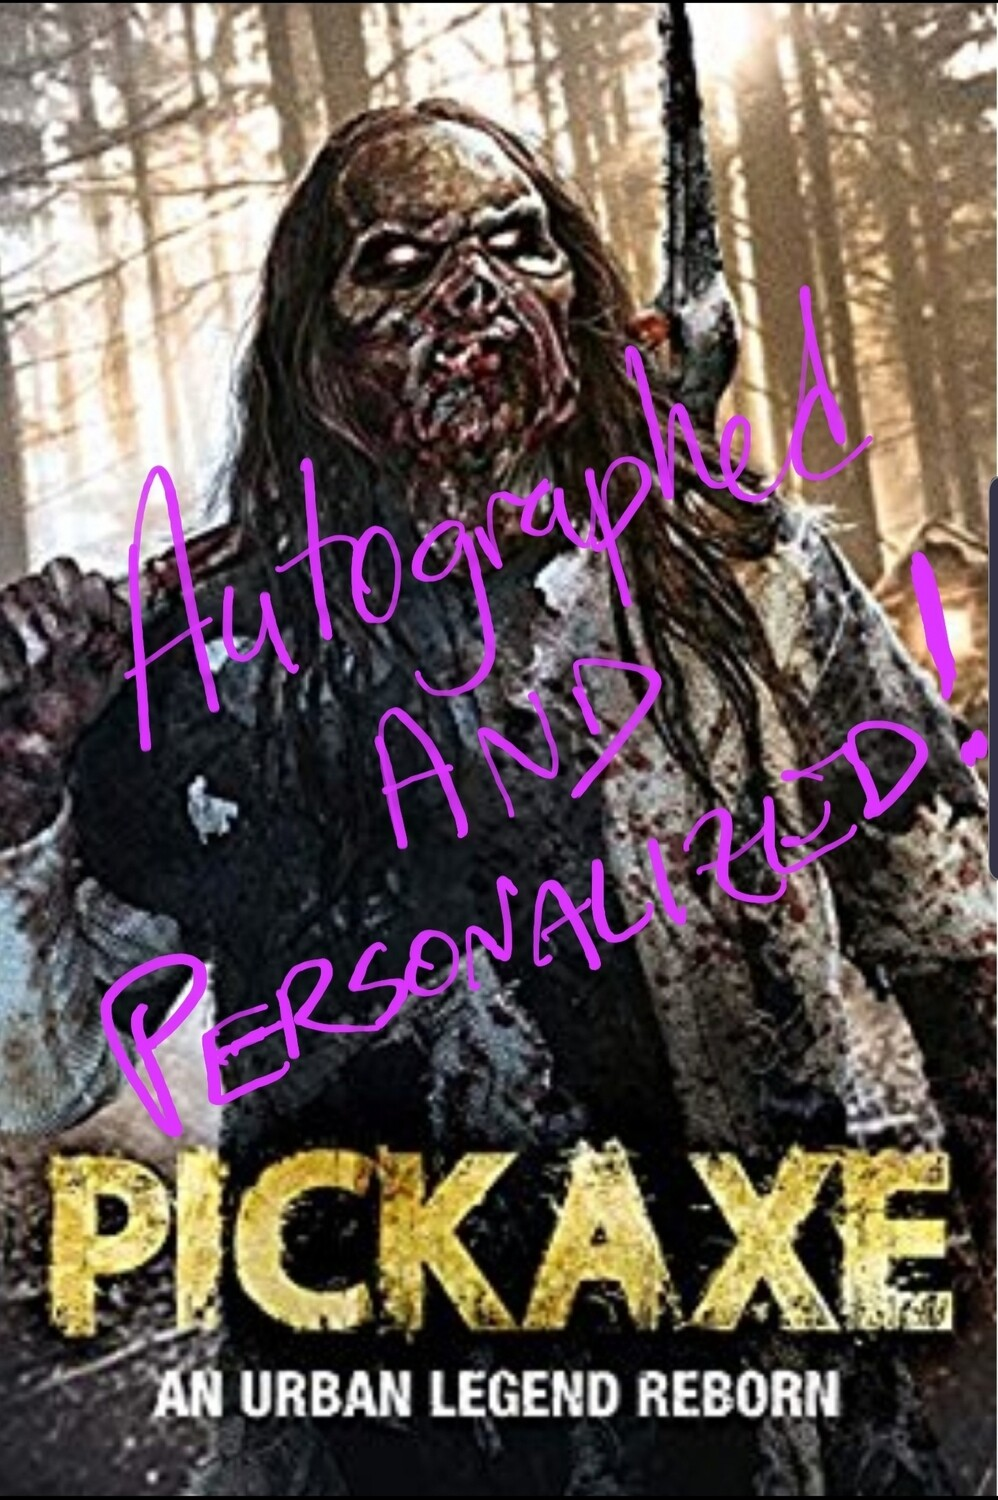 AUTOGRAPHED PICKAXE DVD!